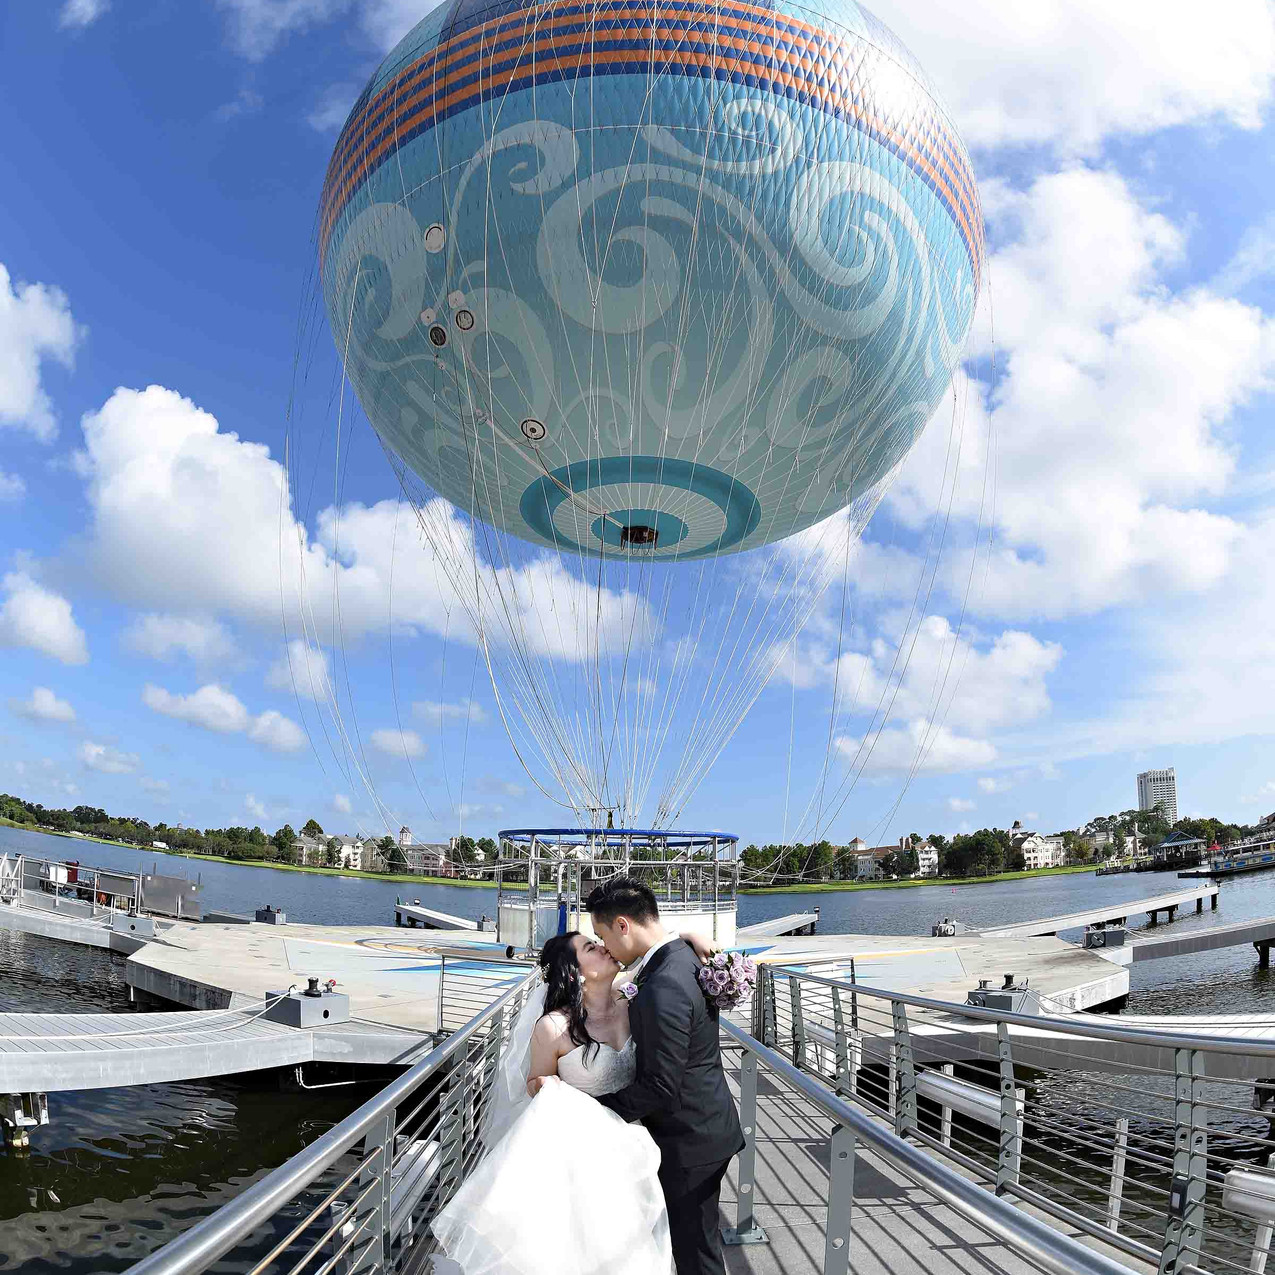 Kiss in front of the balloon